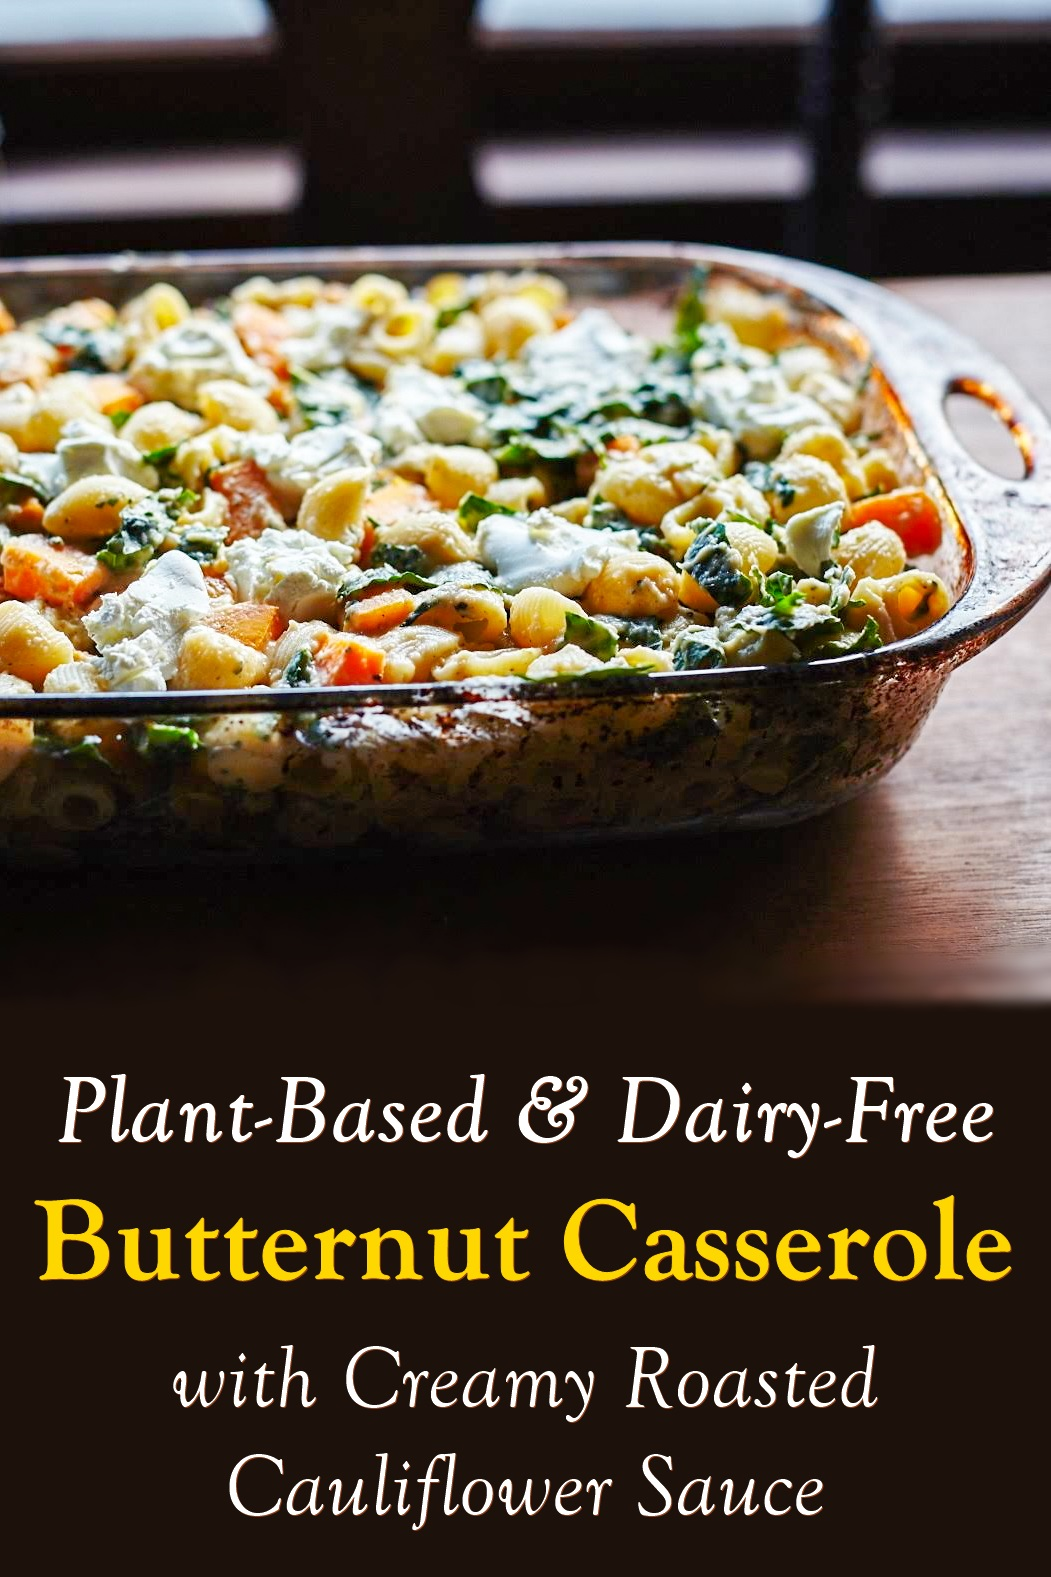 Butternut Squash Pasta with Kale and Creamy Roasted Cauliflower Sauce - a nutritious, winter vegetable, dairy-fee and vegan pasta with gluten-free options.